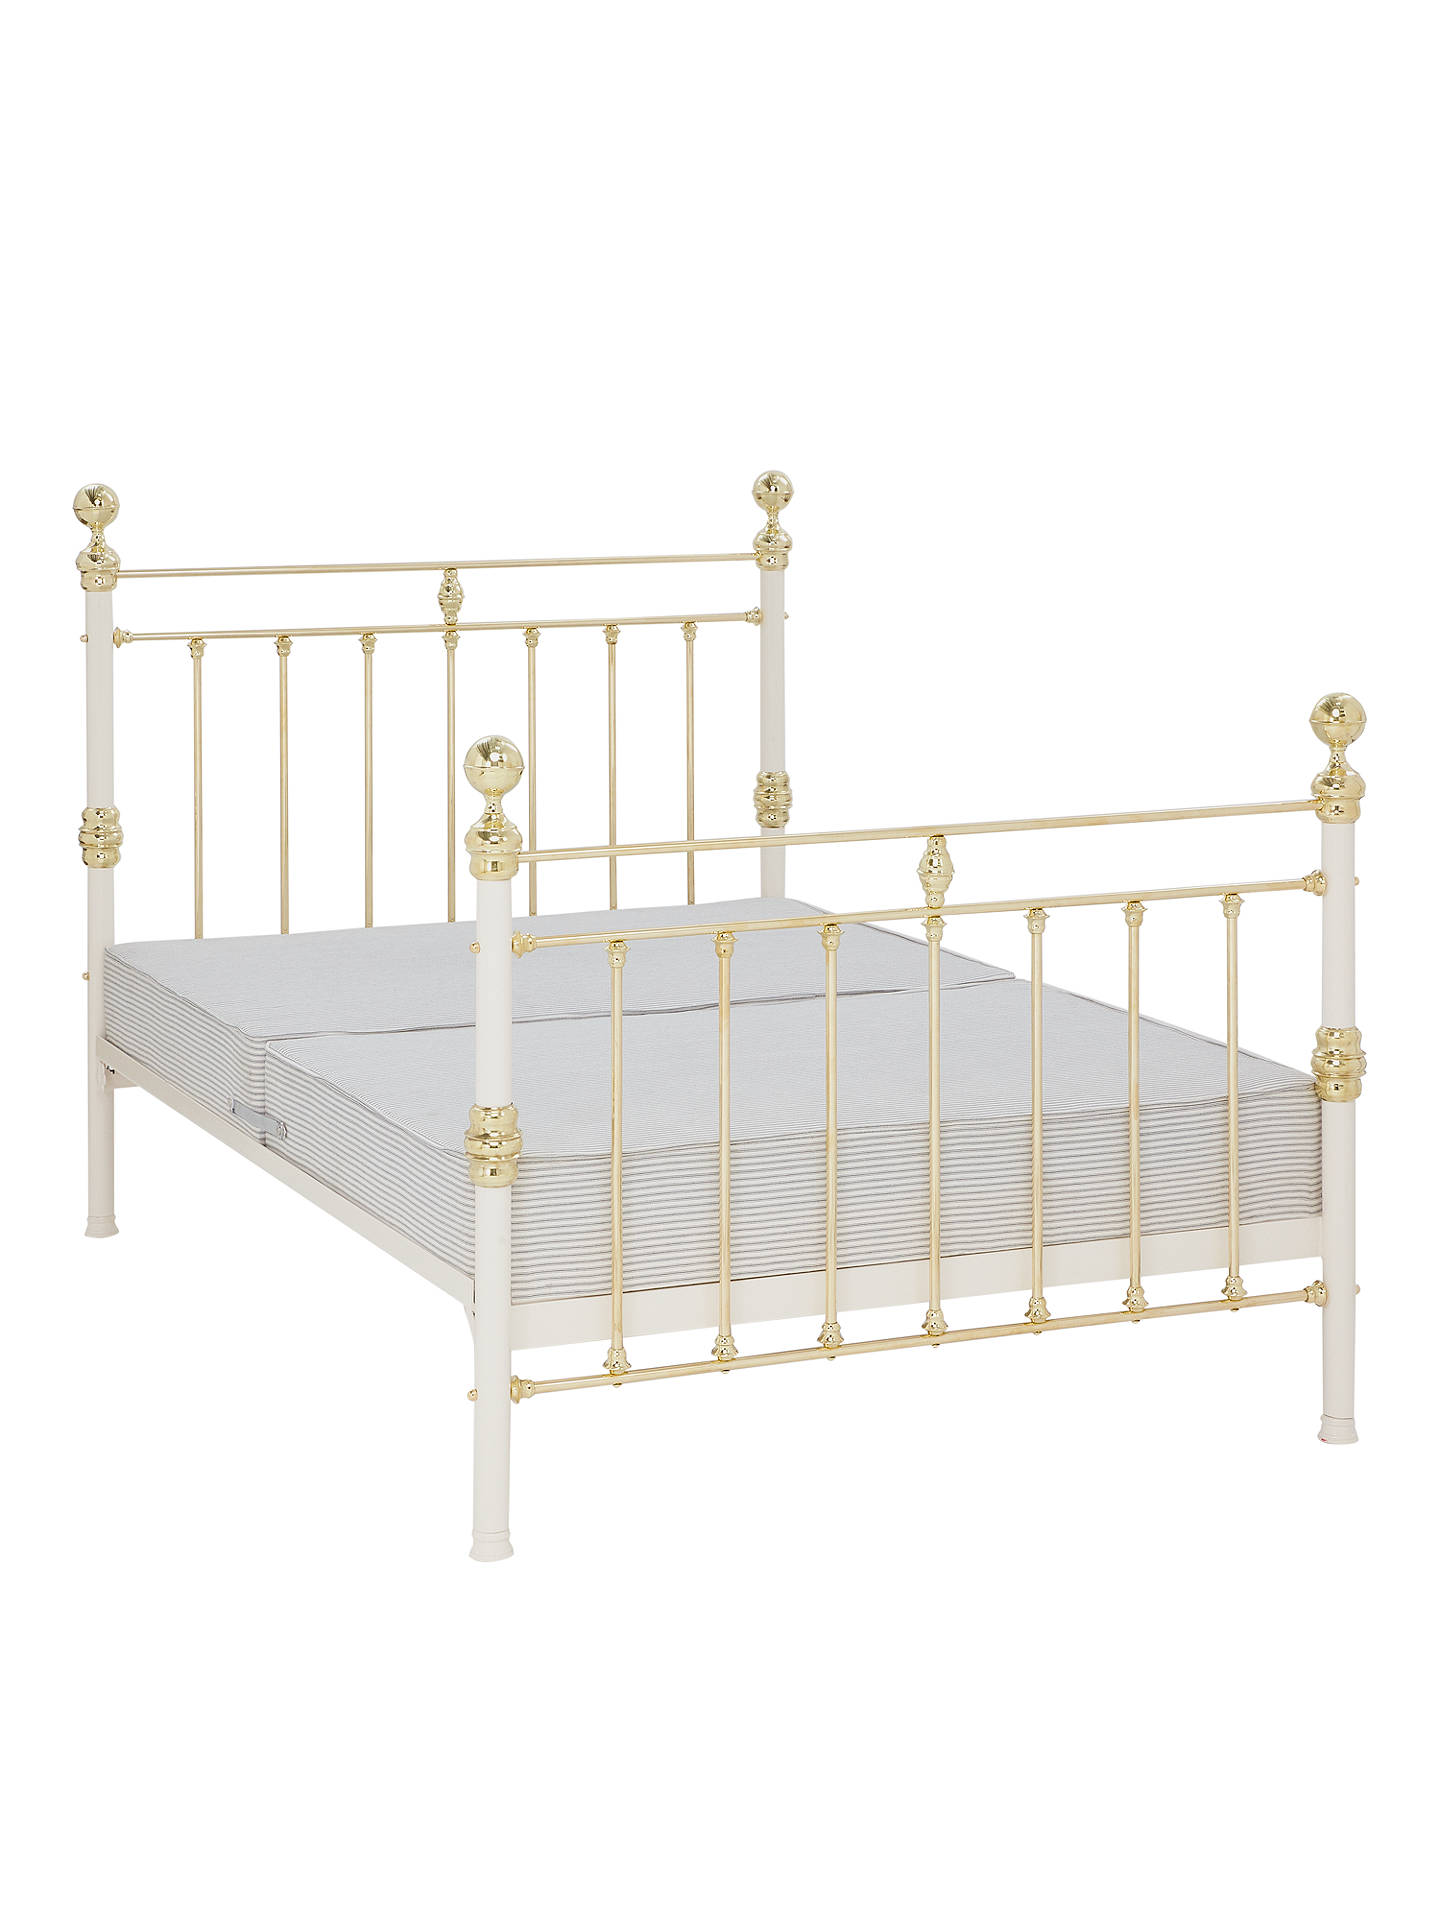 Wrought Iron And Brass Bed Co. George Sprung Bed Frame, King Size ...